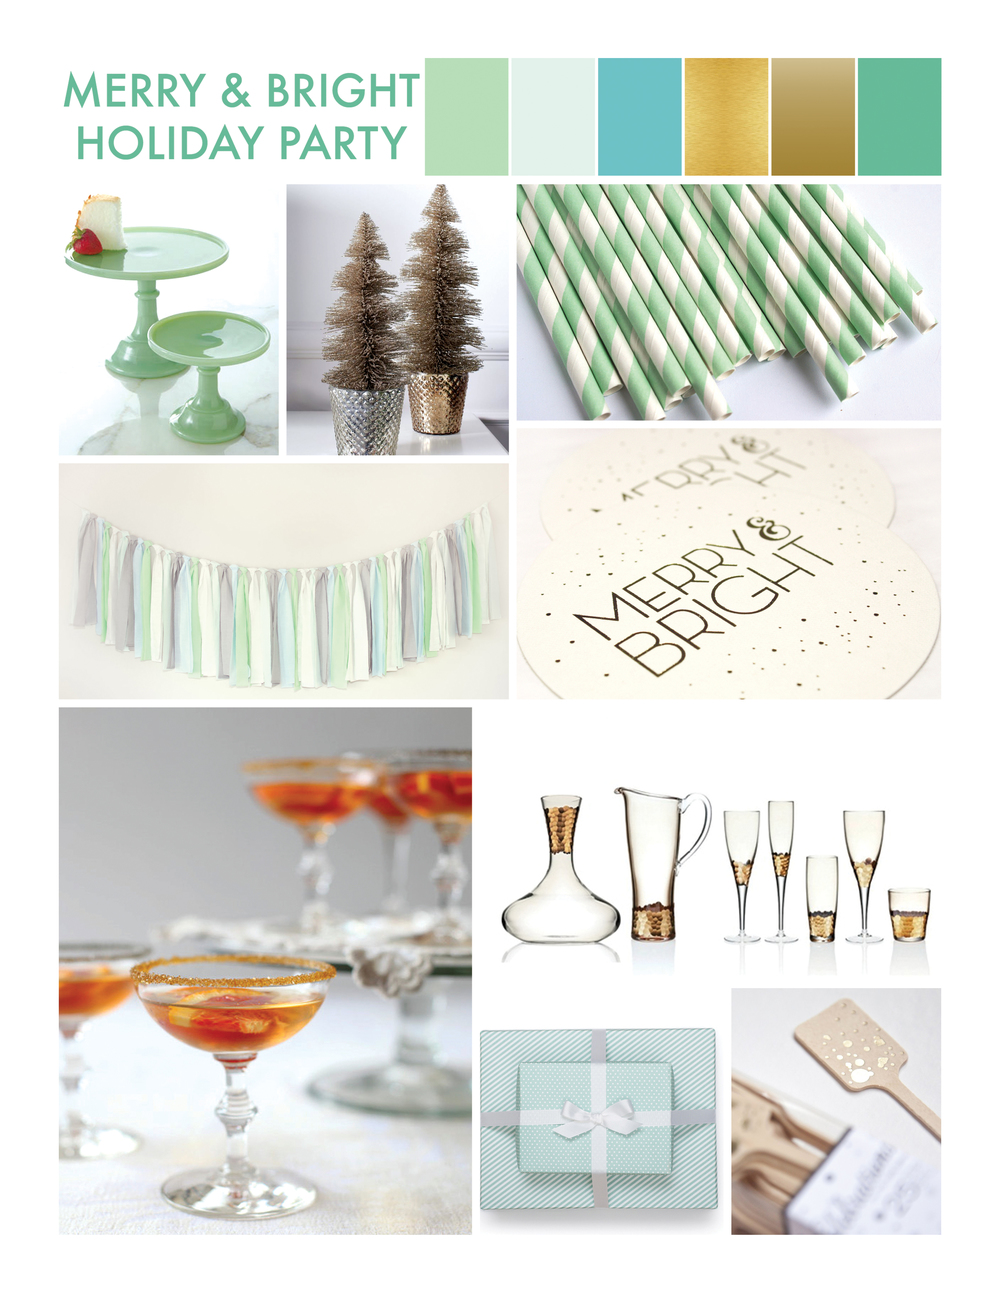 A very merry & bright green and blue holiday party